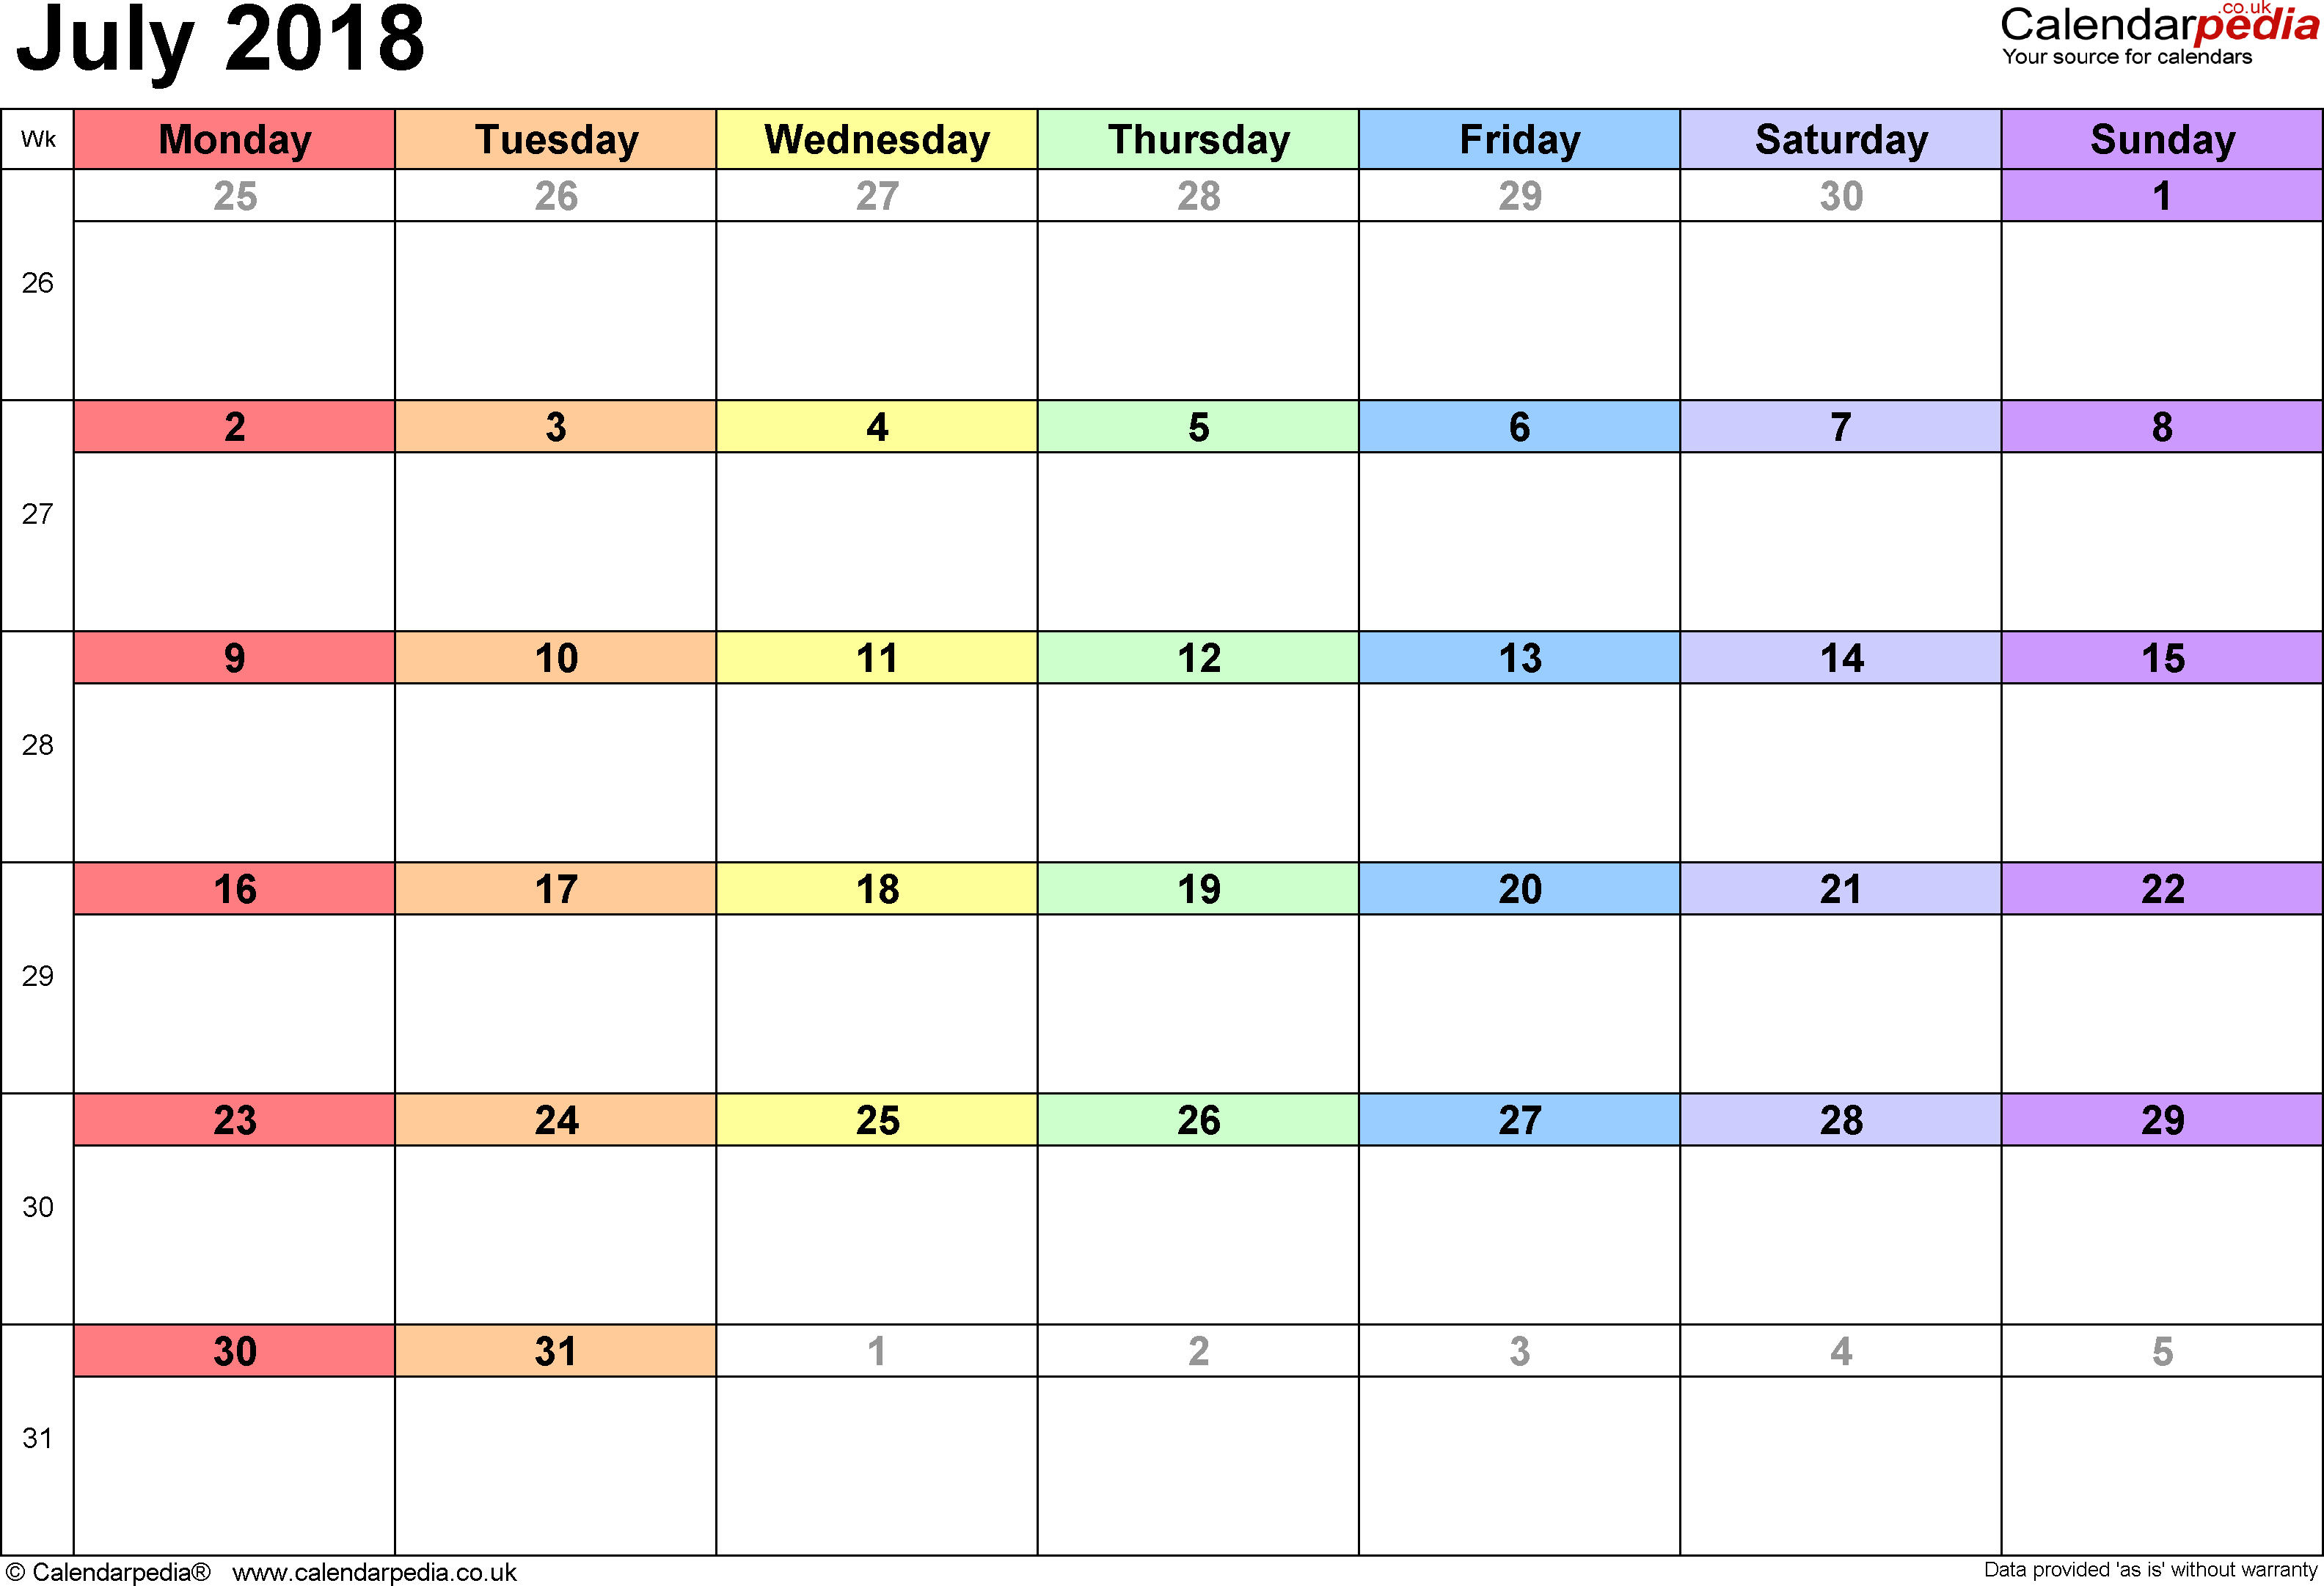 Calendar July 2018, landscape orientation, 1 page, with UK bank holidays and week numbers